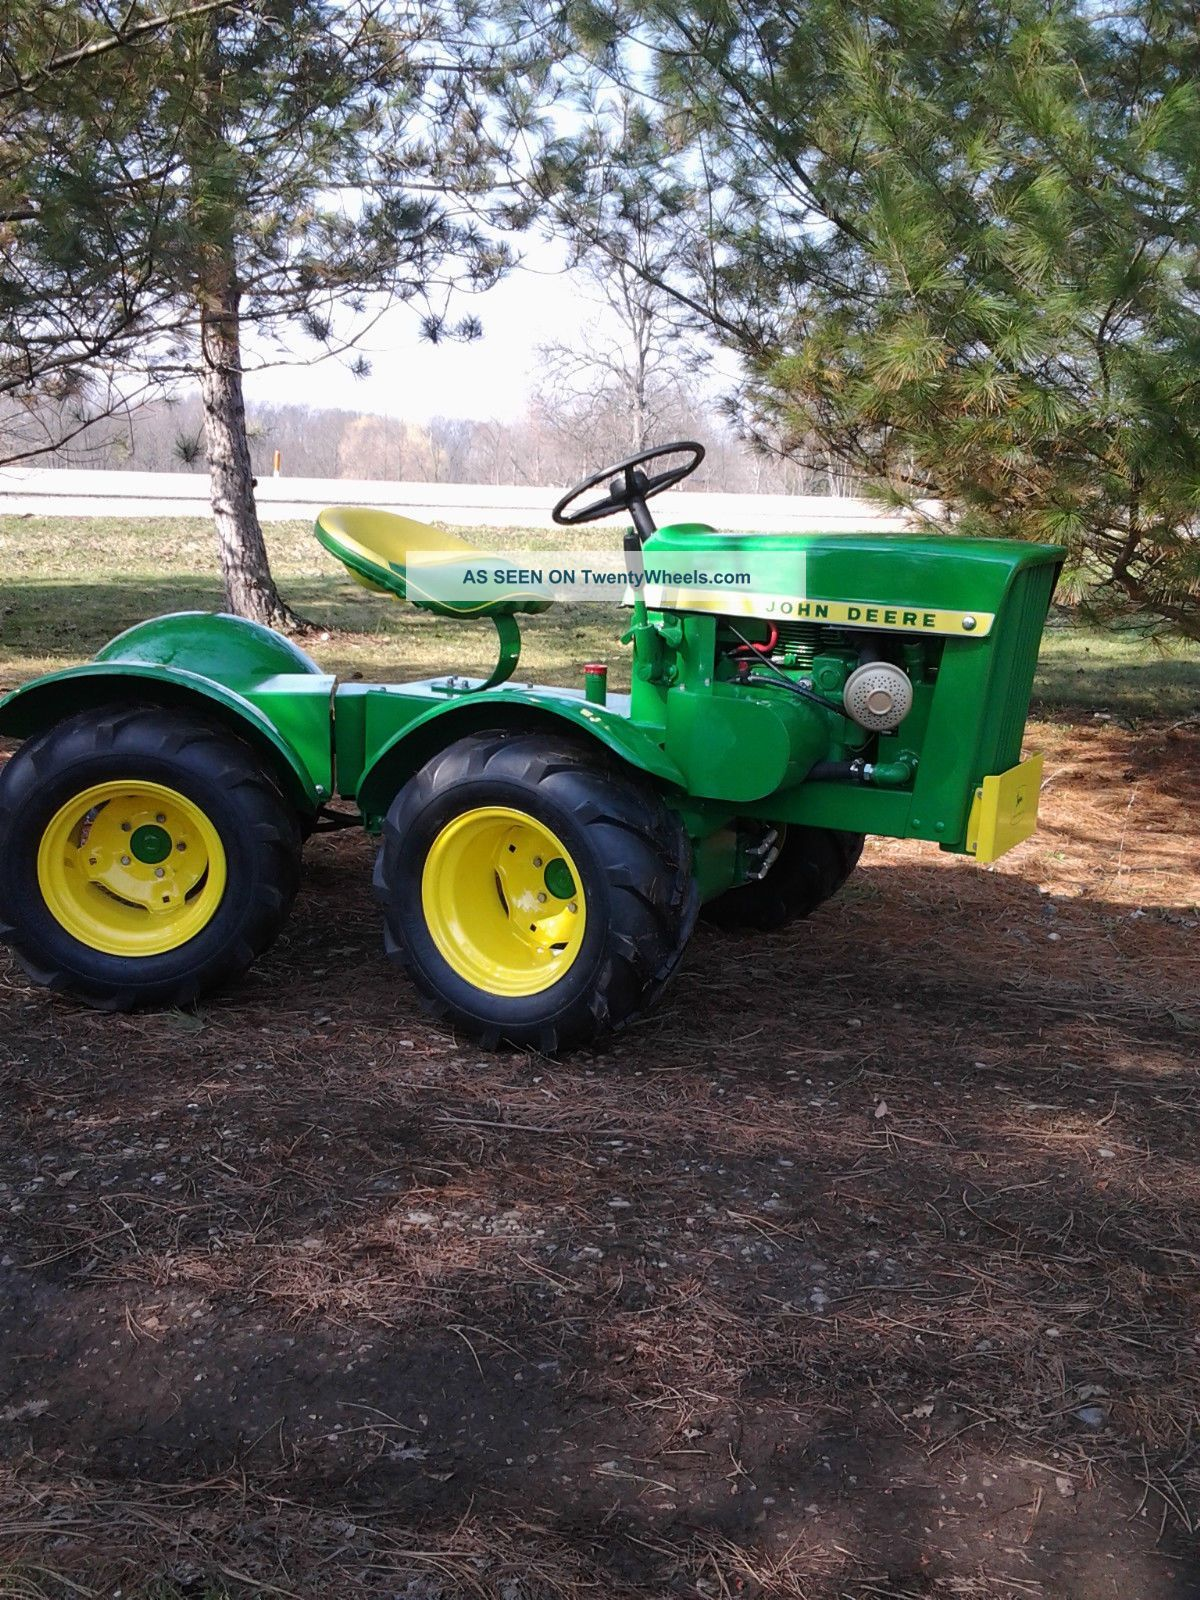 John Deere 110 Round Fender 4x4 Articulated Garden Tractor - Custom Built  Antique & Vintage Farm Equip photo